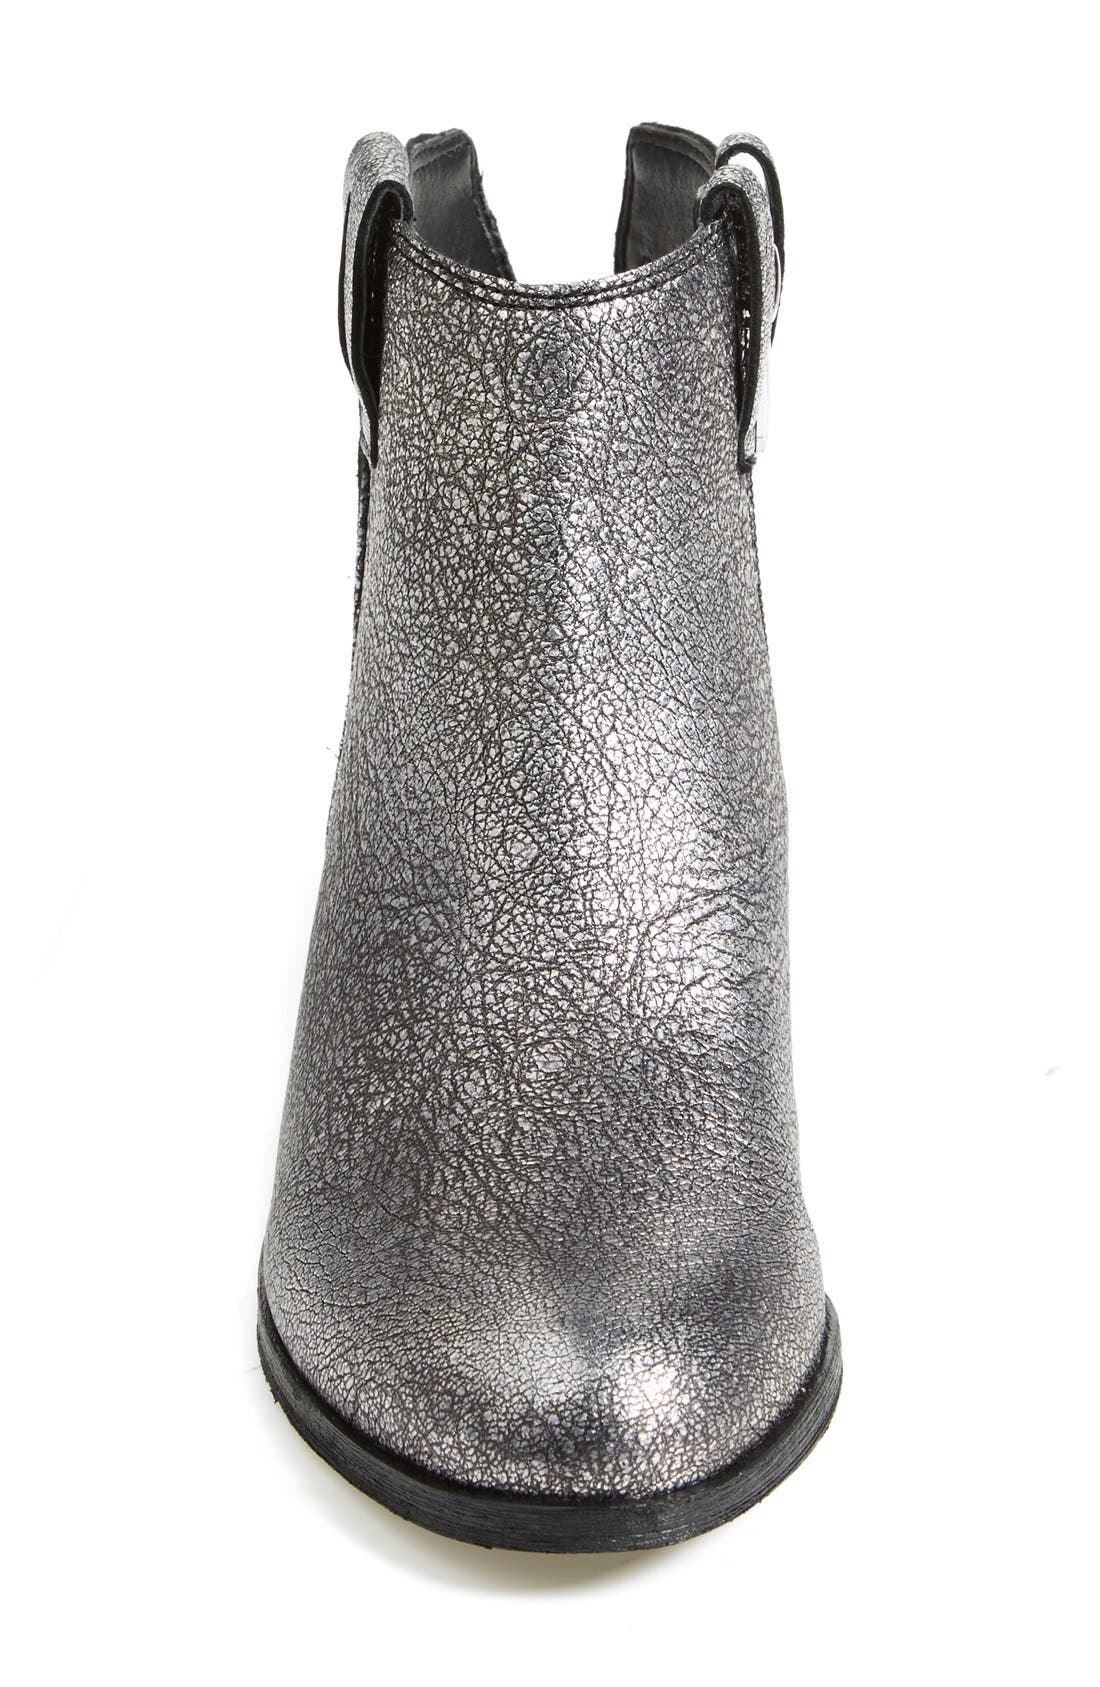 'James' Round Toe Bootie,                             Alternate thumbnail 4, color,                             Argento Silver